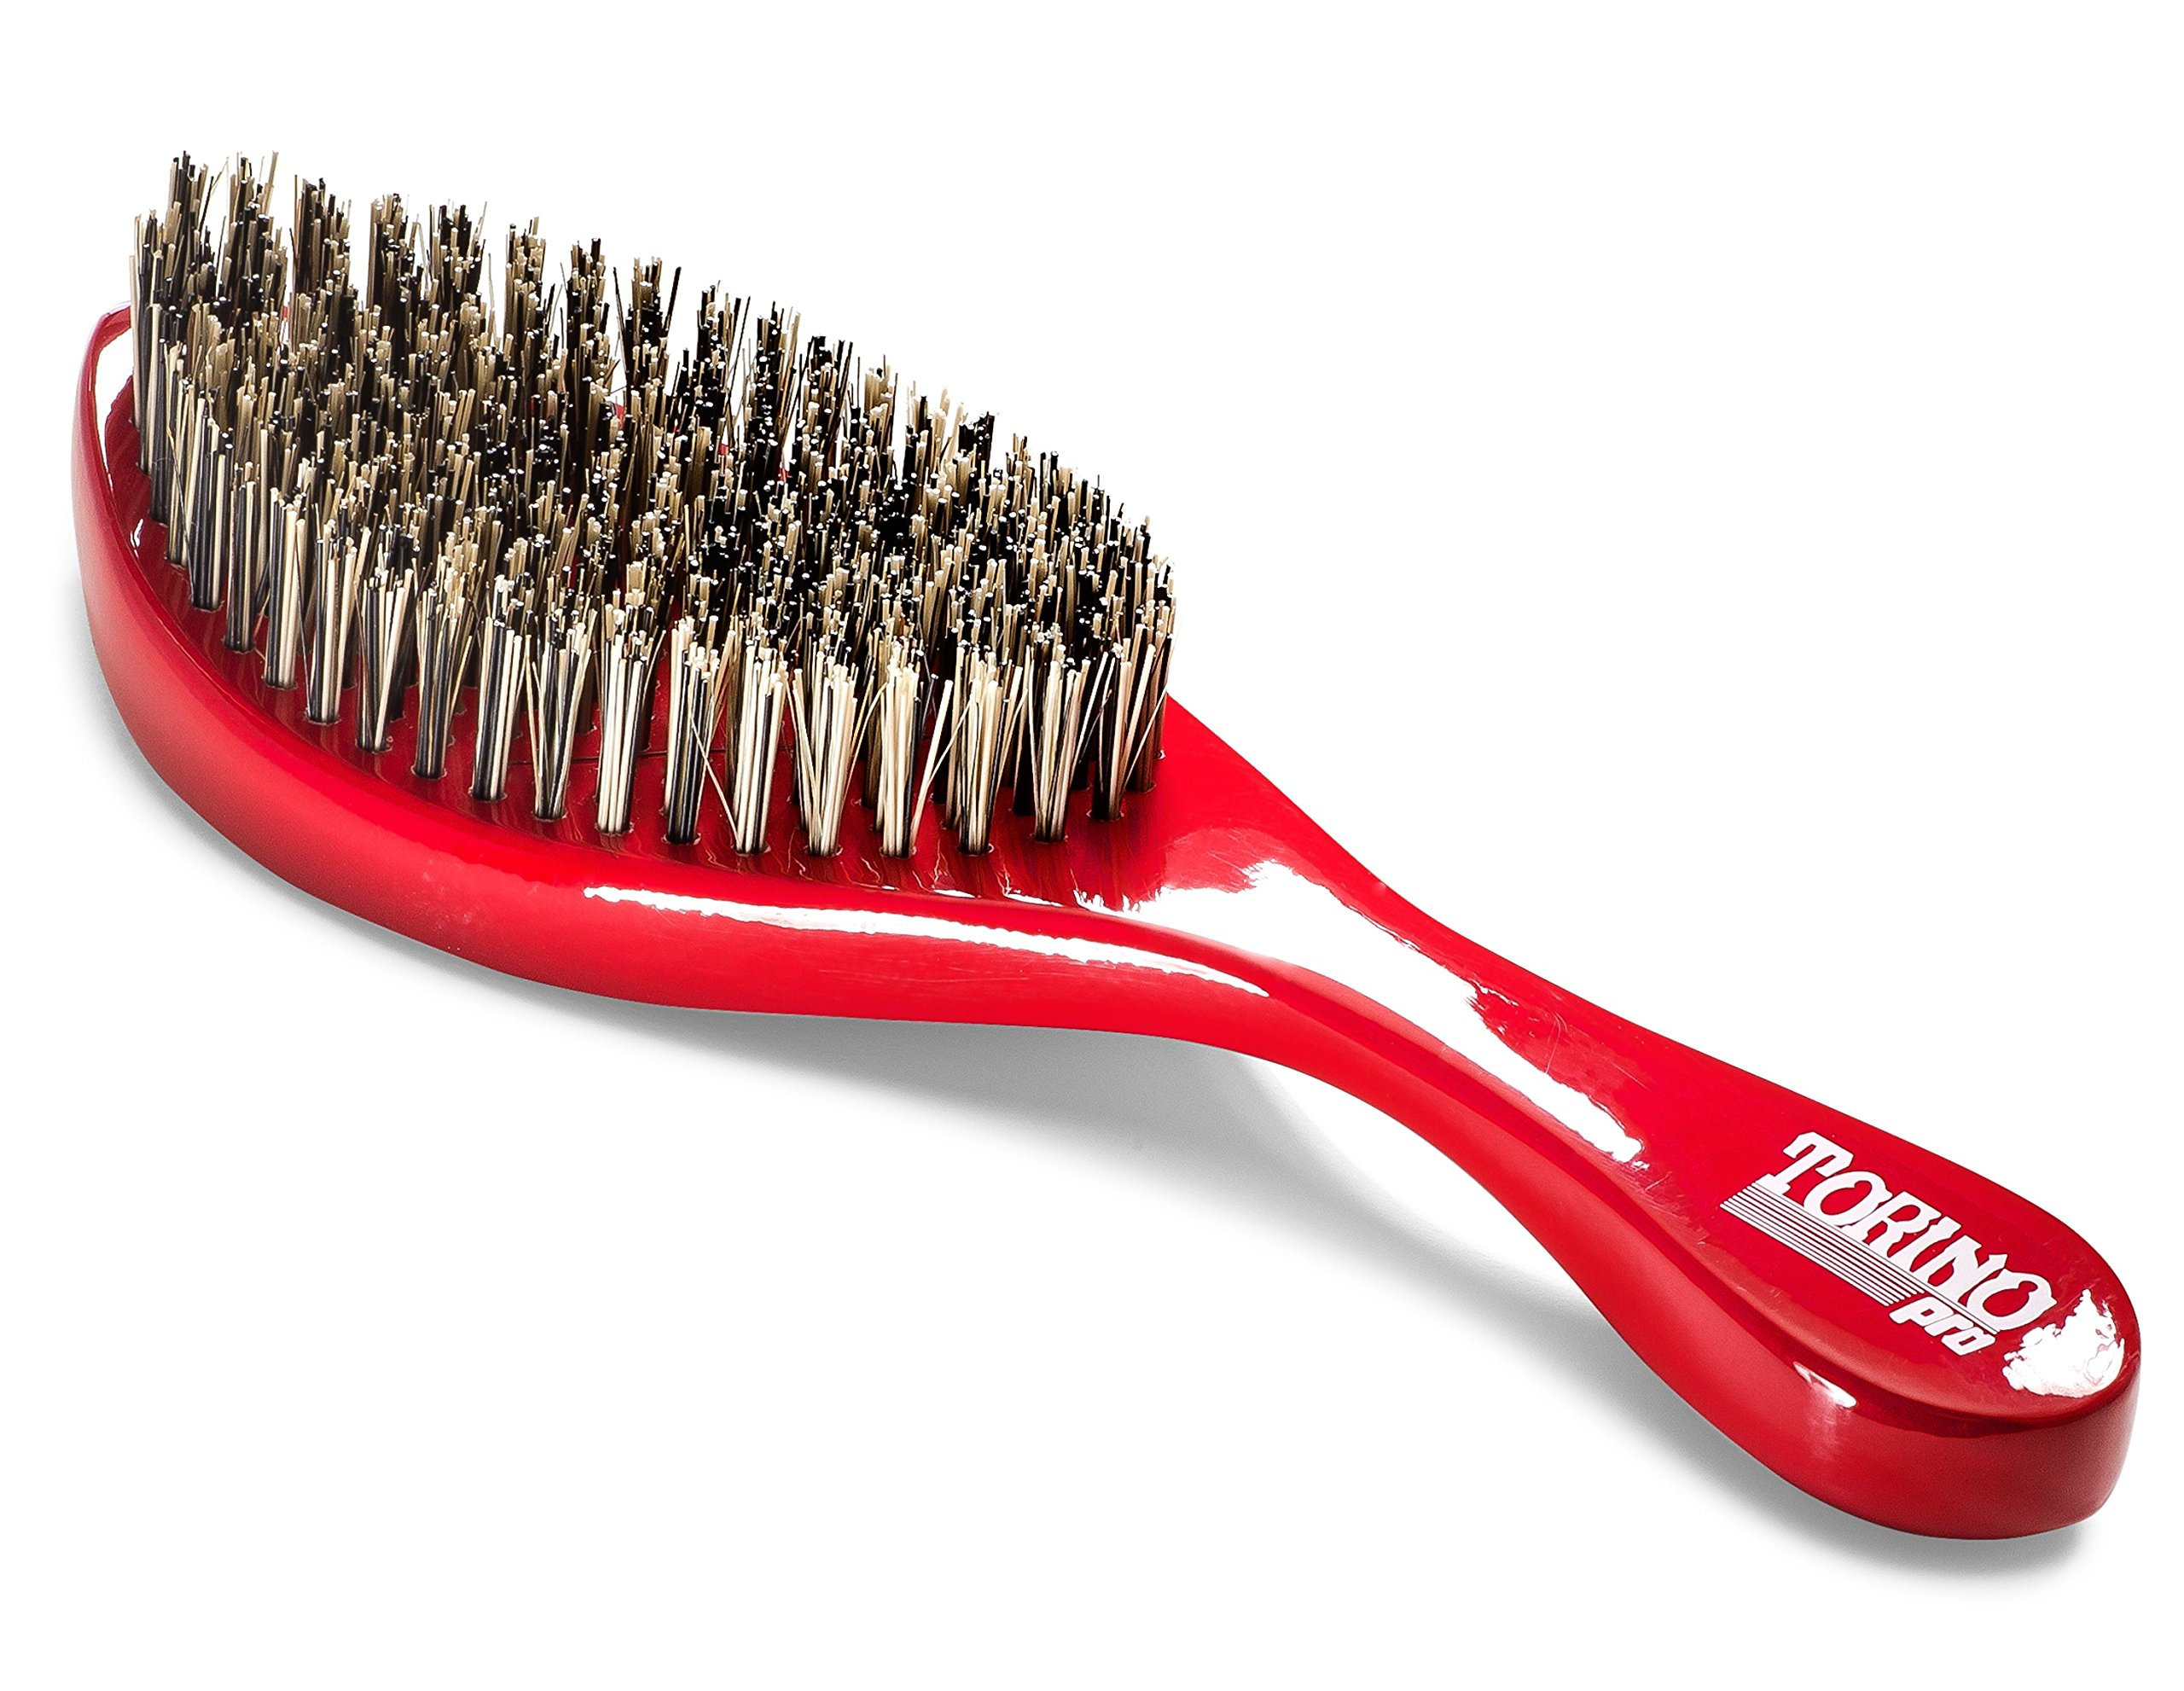 Torino Pro Wave Brush #470 by Brush King - Extra Hard Curve Wave Brush with Reinforced Boar & Nylon Bristles - Great for Wolfing - Curved 360 Waves Brush by Torino Pro (Image #2)